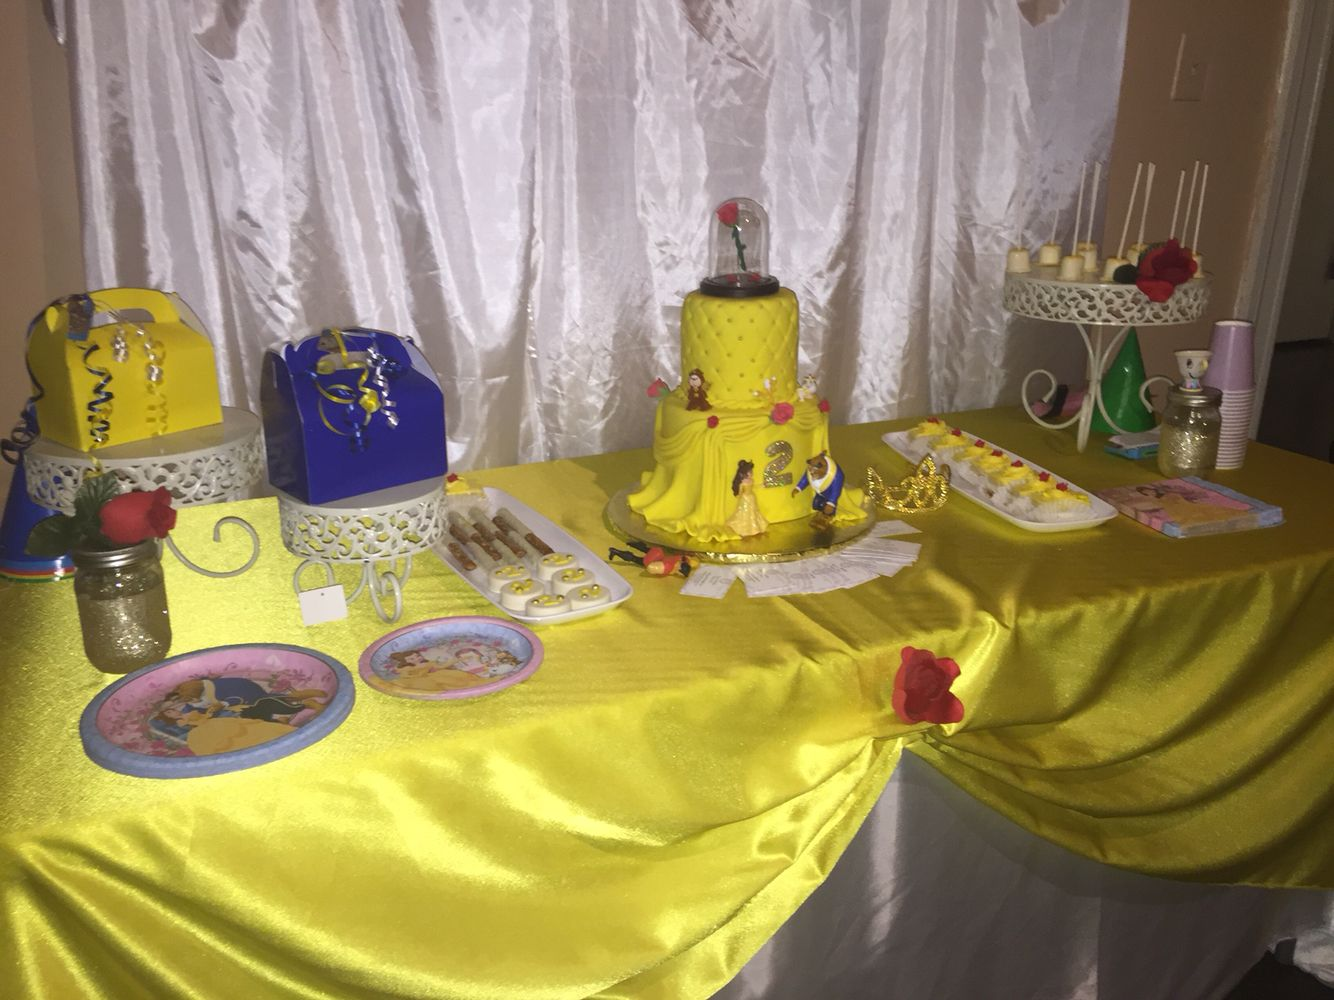 Cake table beauty and the beast party decorations for Beauty and beast table decorations